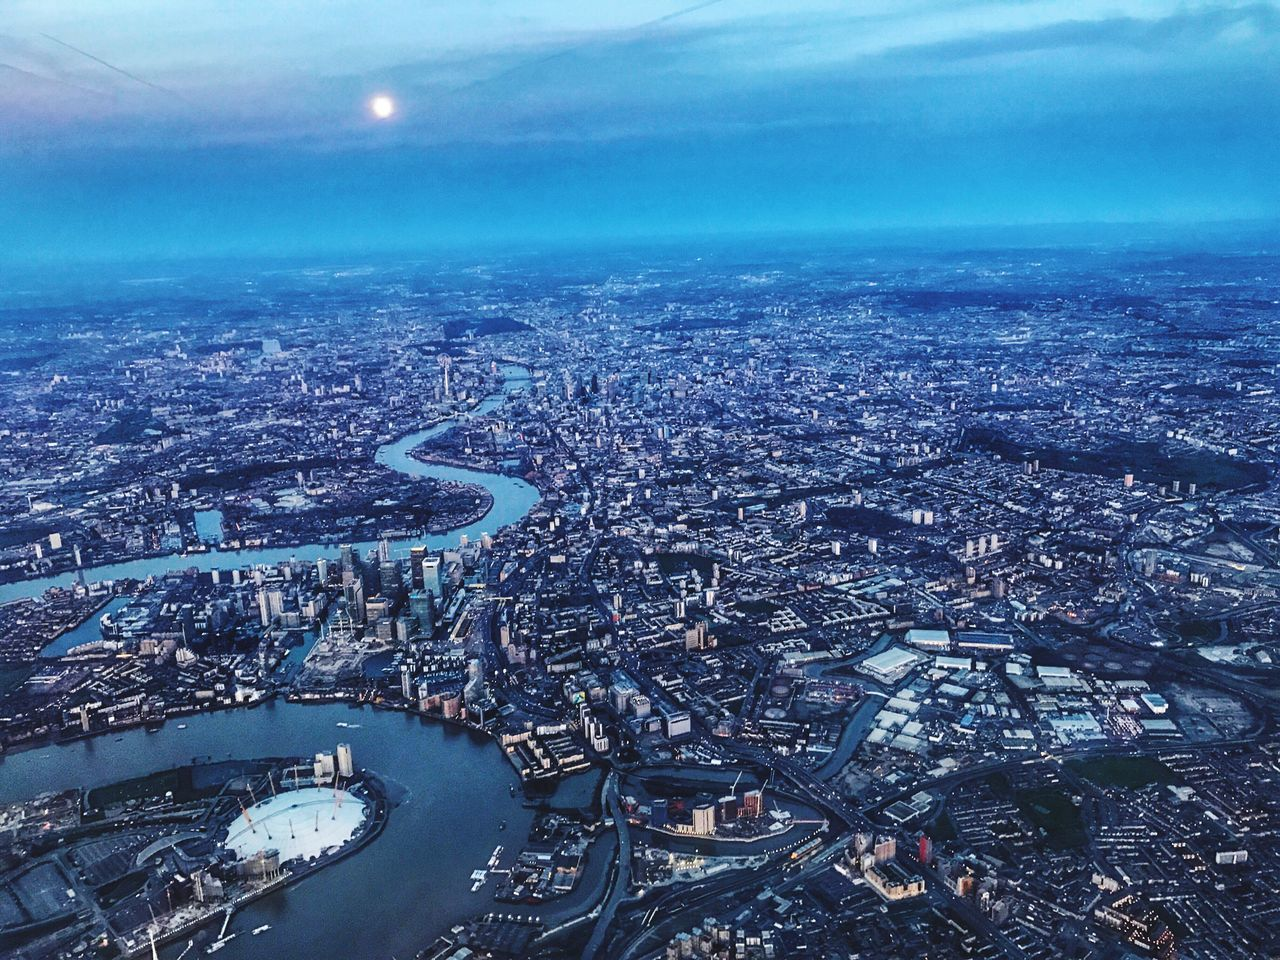 cityscape, city, aerial view, architecture, building exterior, built structure, crowded, sky, river, outdoors, city life, transportation, day, landscape, road, travel destinations, nature, scenics, skyscraper, urban skyline